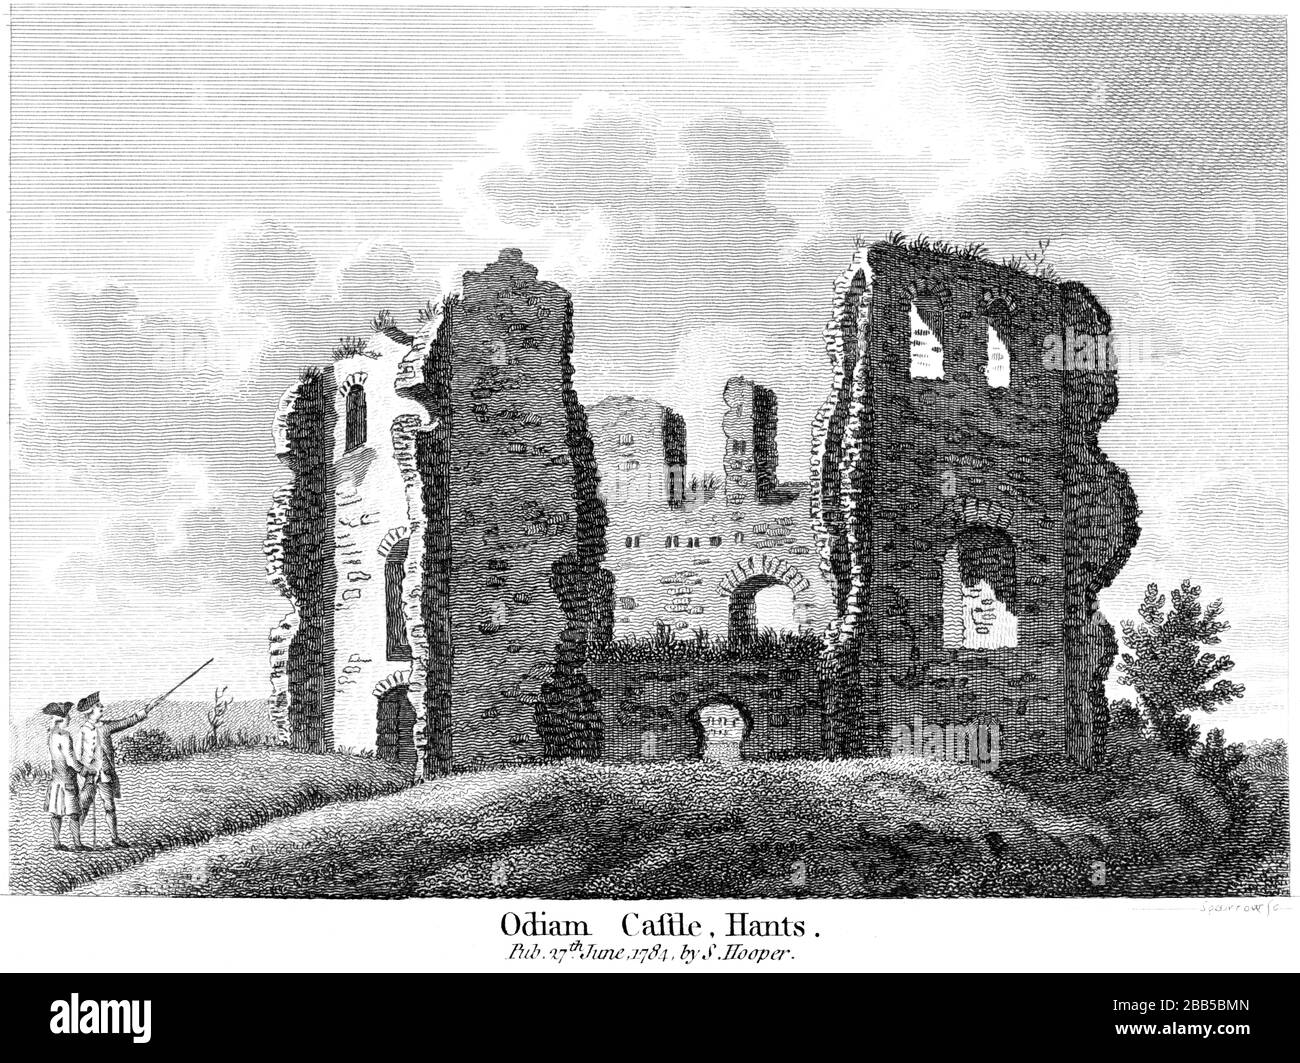 An engraving of Odiam (Odiham) Castle Hants 1784 scanned at high resolution from a book published around 1786. Believed copyright free. Stock Photo